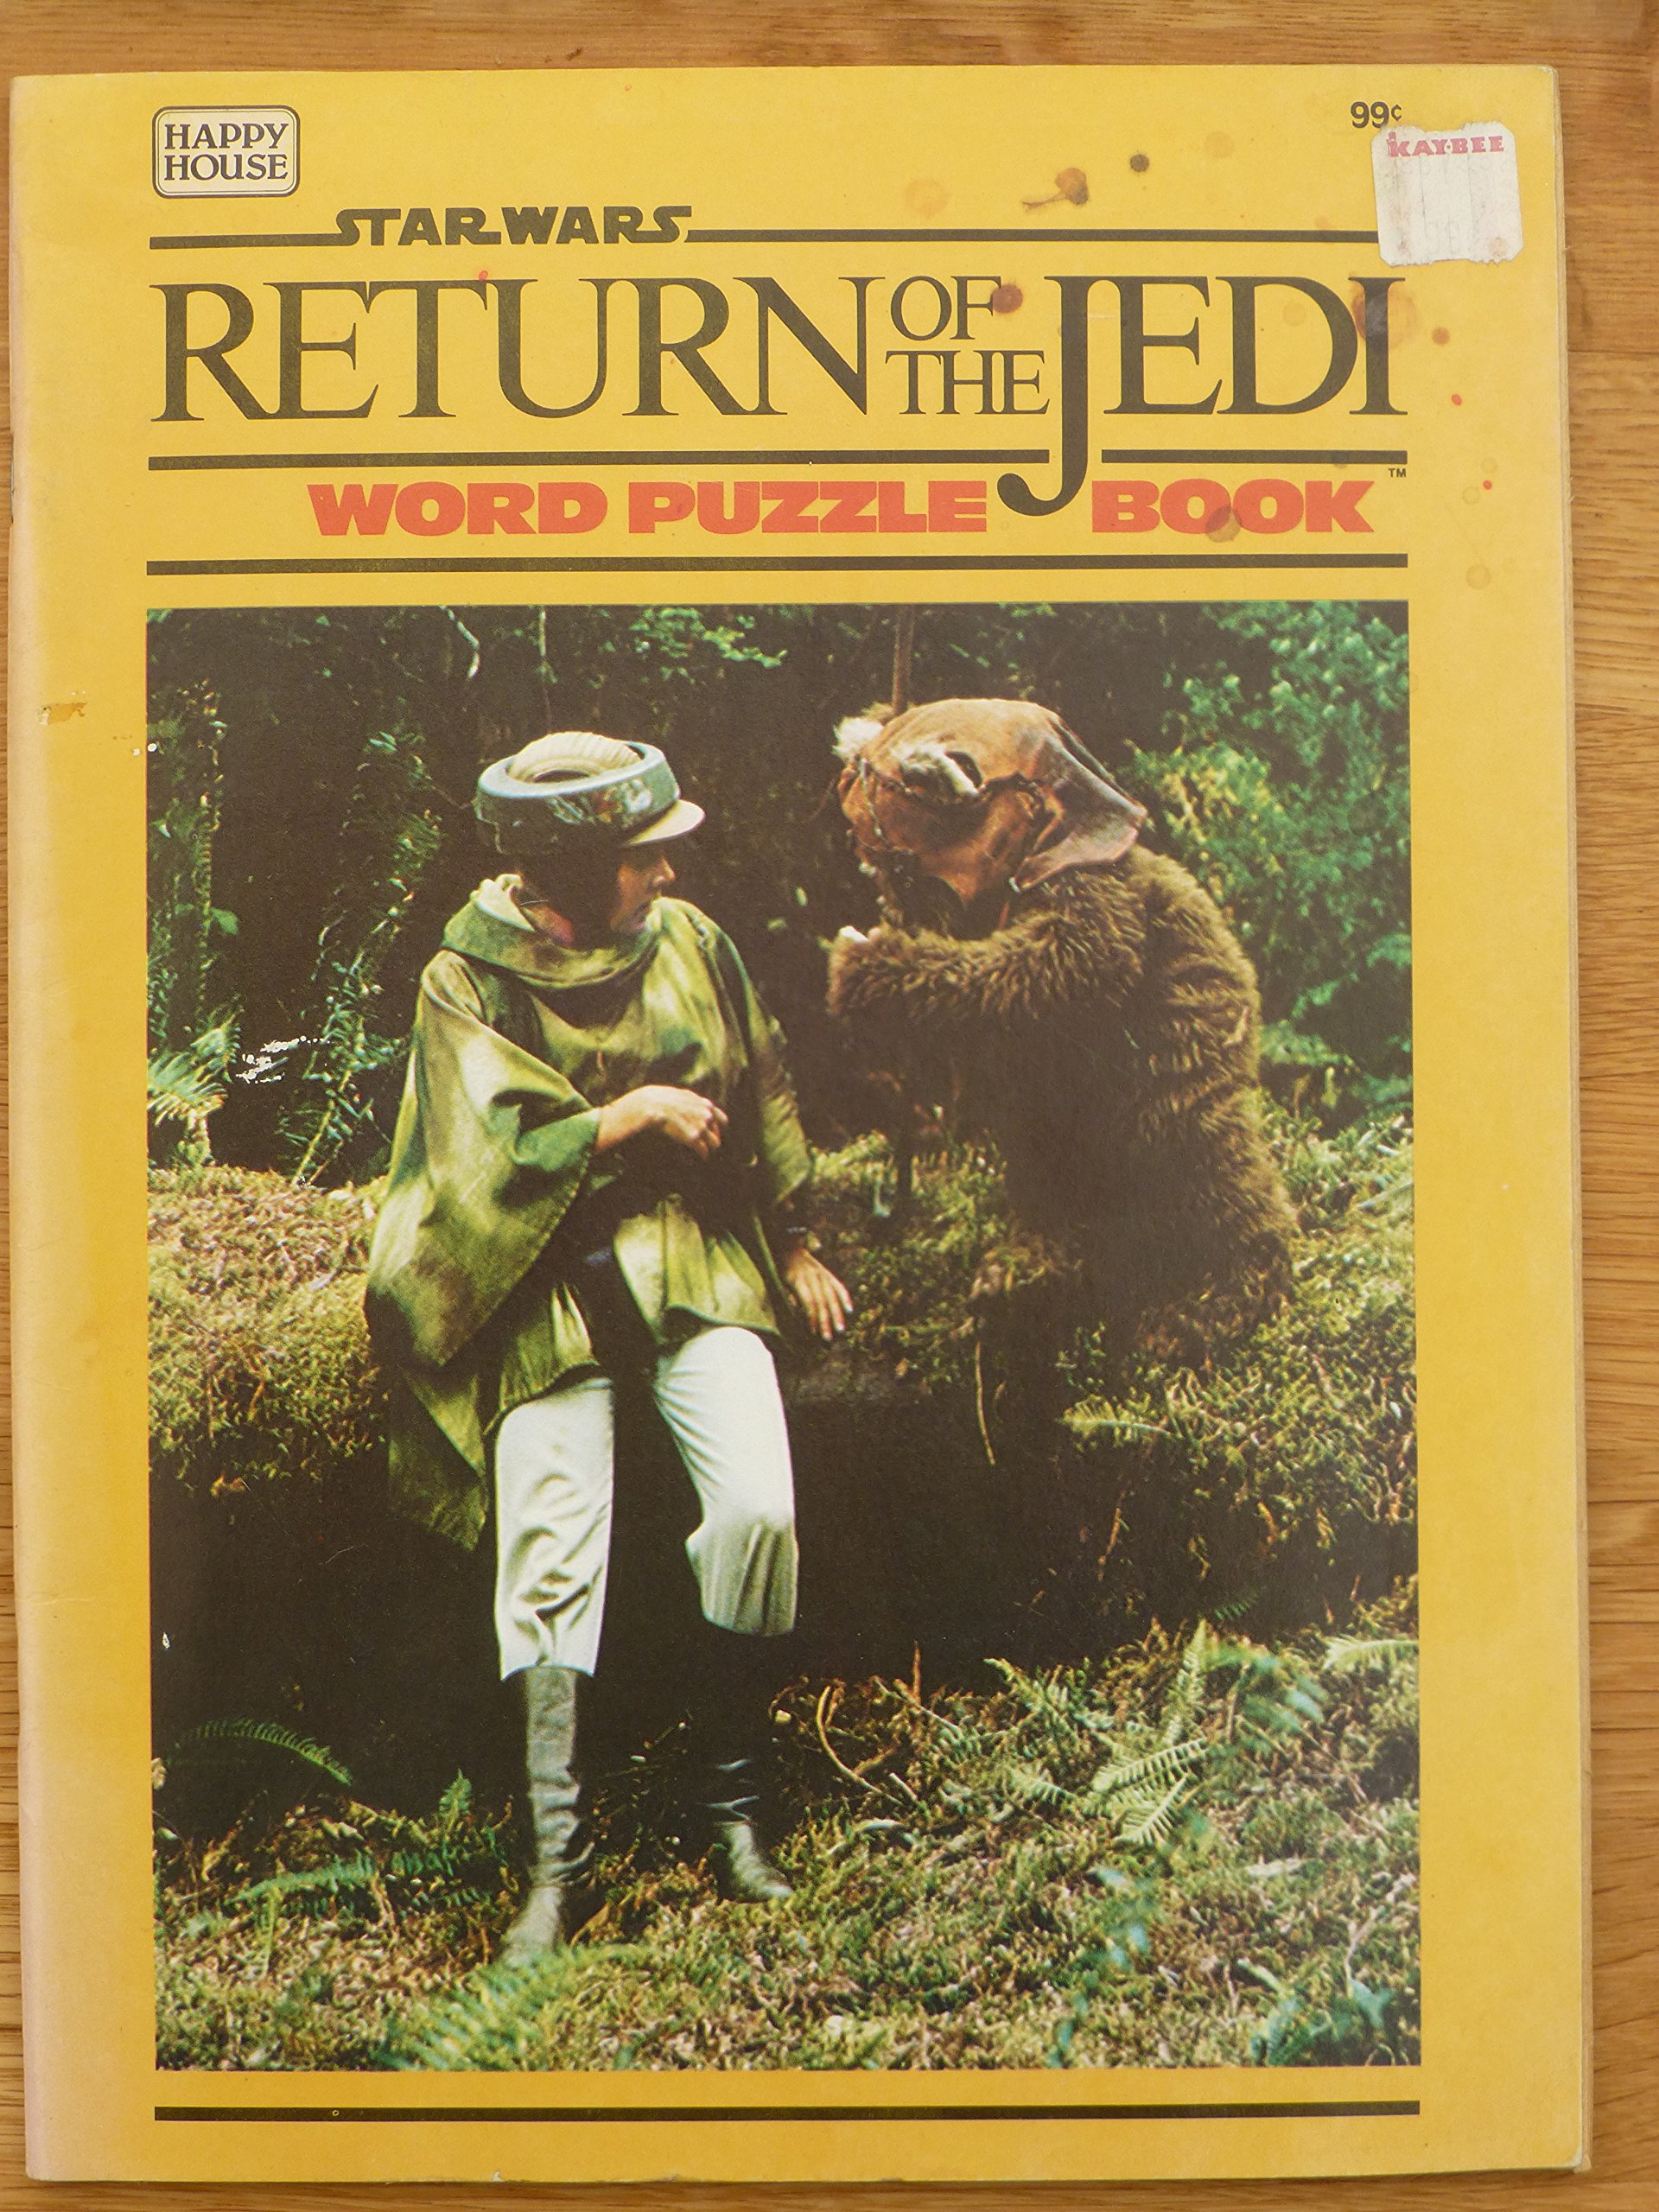 Star Wars Return of the Jedi: Word Puzzle Book